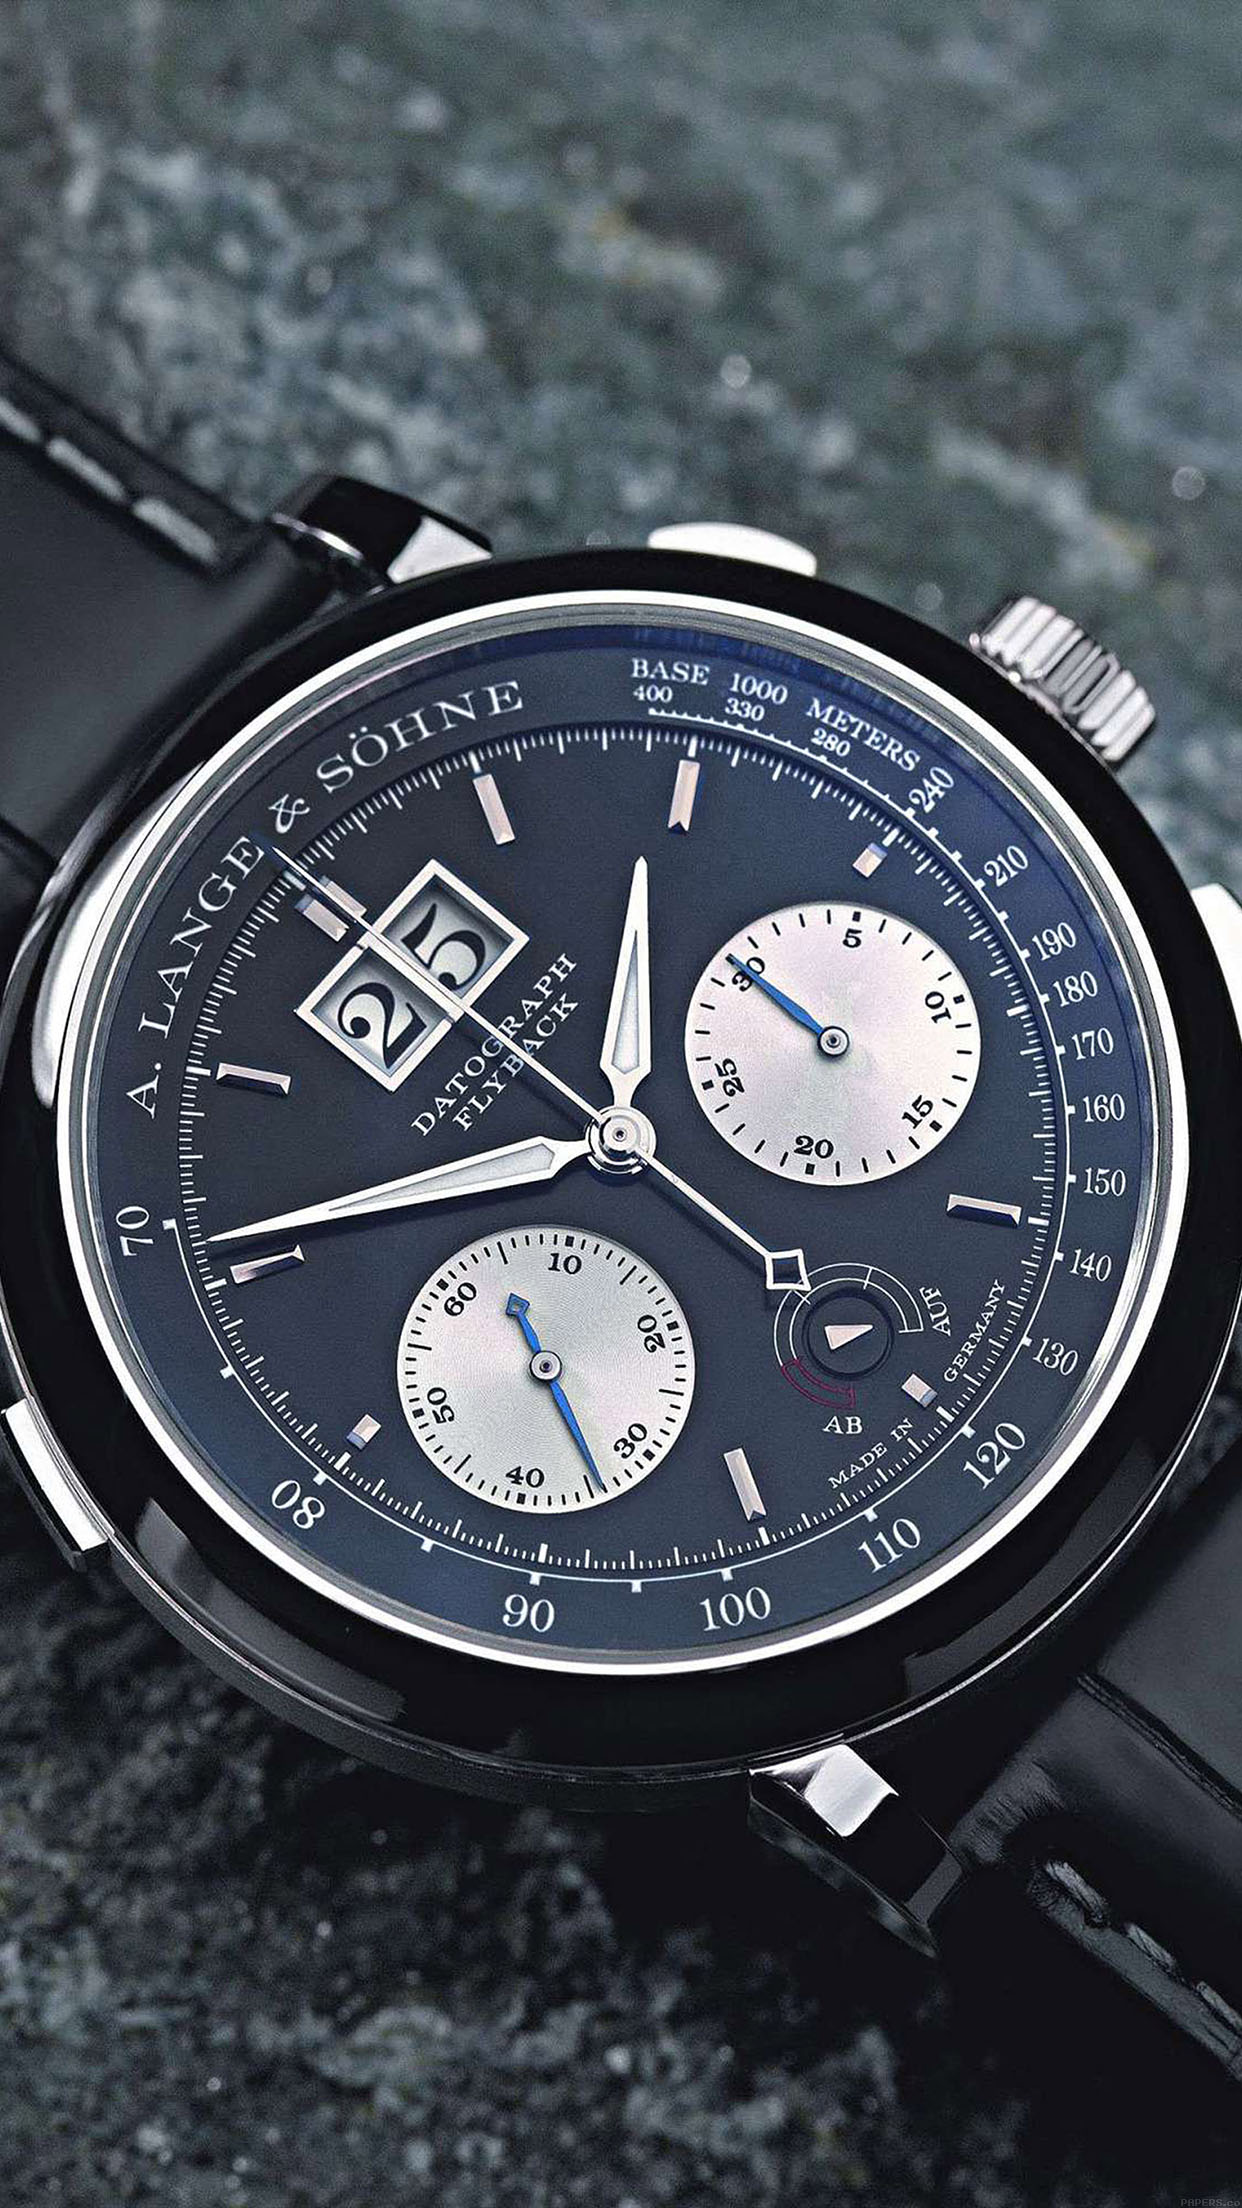 Iphone6papers Ab44 Wallpaper A Lange And Sohne Watch